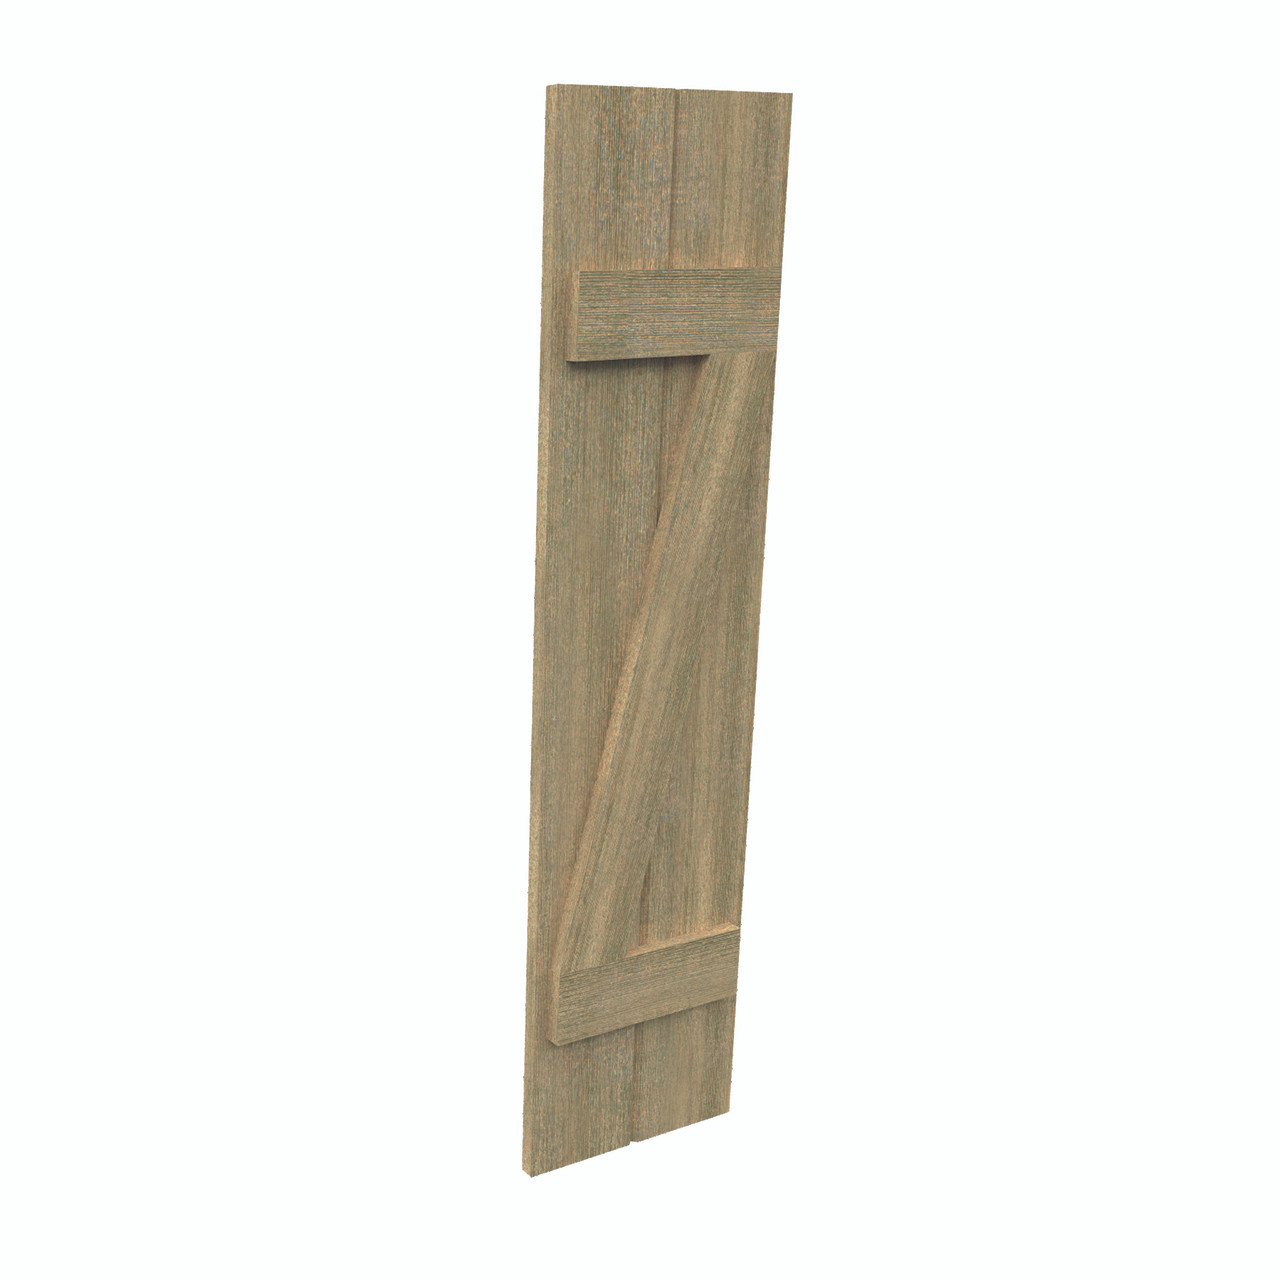 Fypon shutter___SH2PZC12X105RS___SHUTTER 2 BOARD AND Z-BATTEN12X105X1-1/2 ROUGH SAWN WOOD GRA